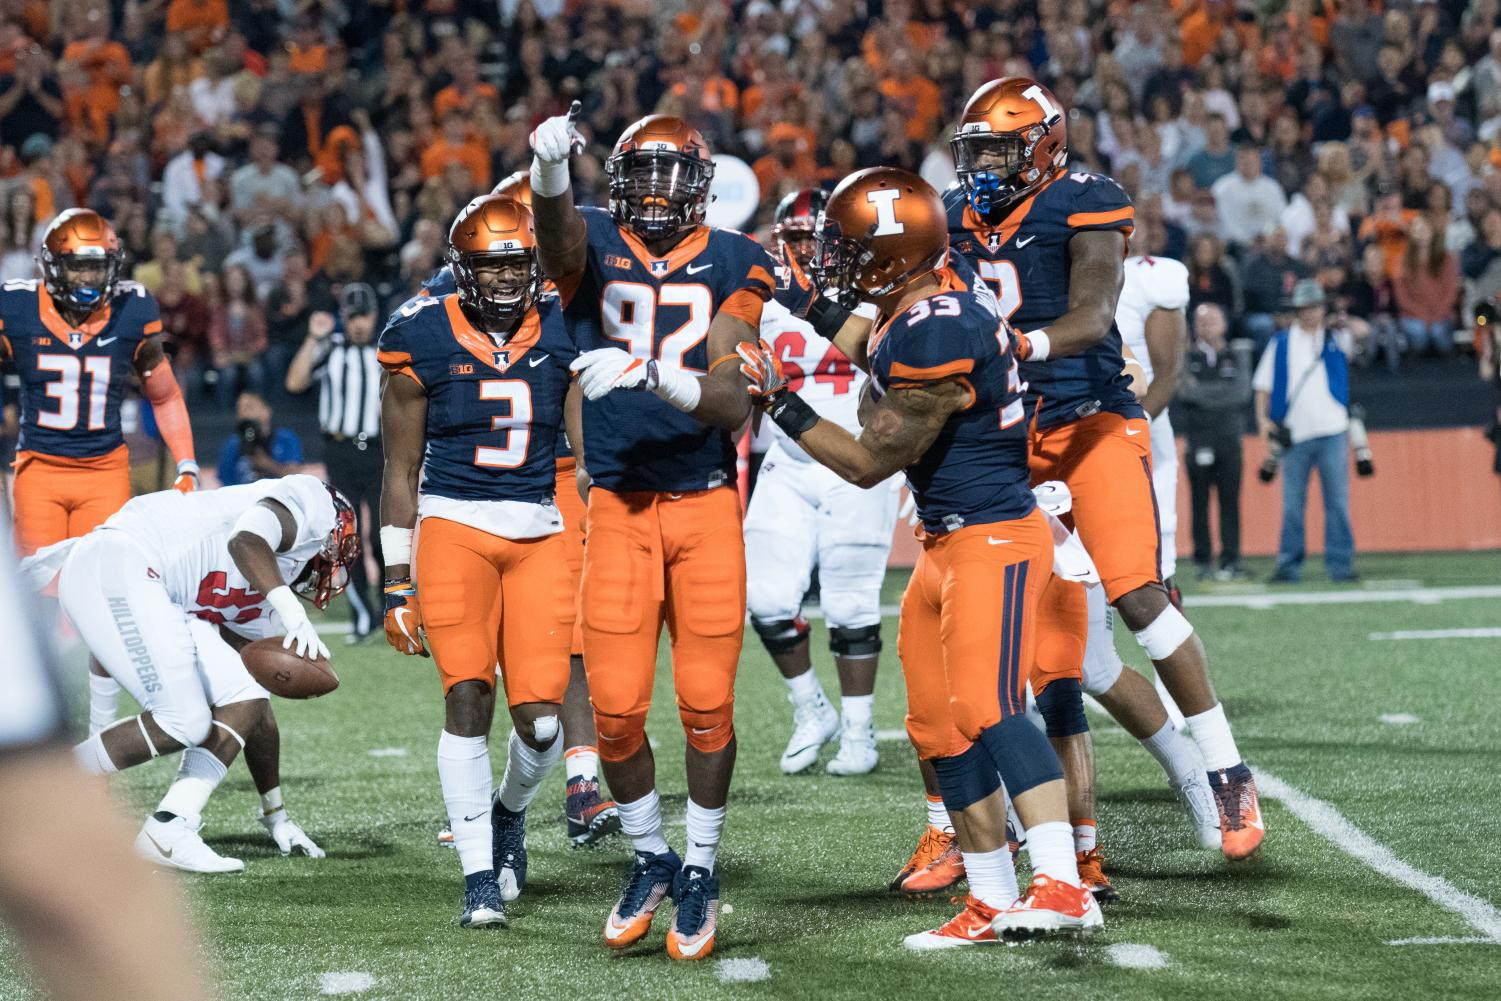 Illinois players celebrate a defensive stop in their game against Western Kentucky on September 9, 2017. Illinois picked up its second and last victory of the season in a 20-7 win.